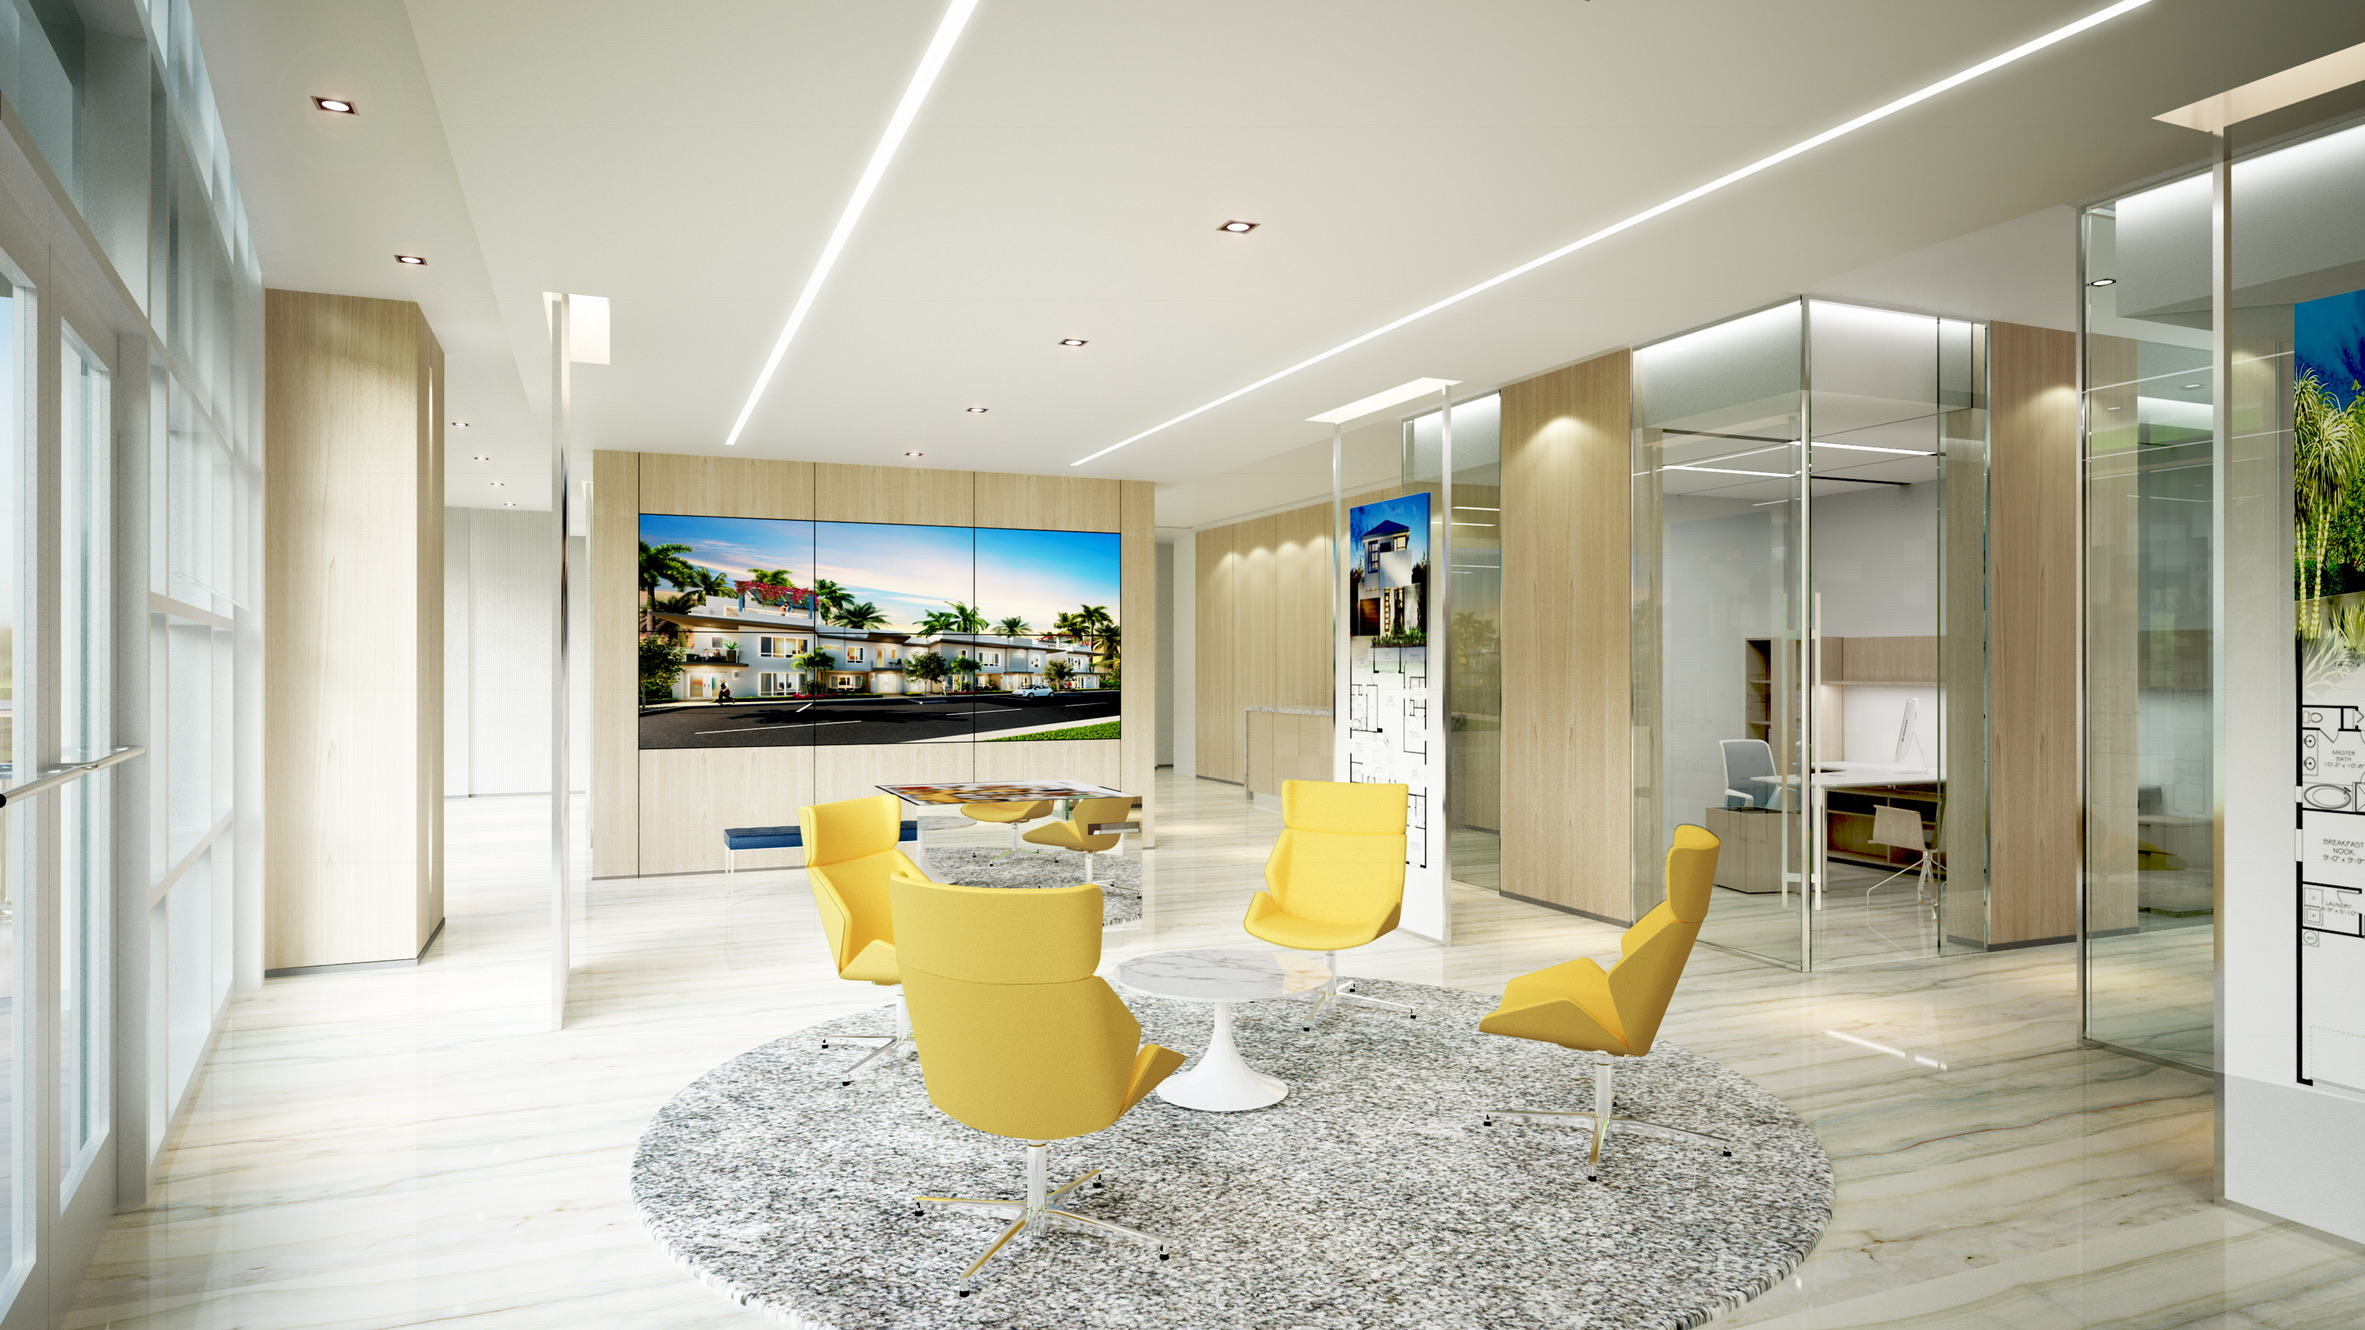 THE RESIDENCE SALES CENTER LOBBY